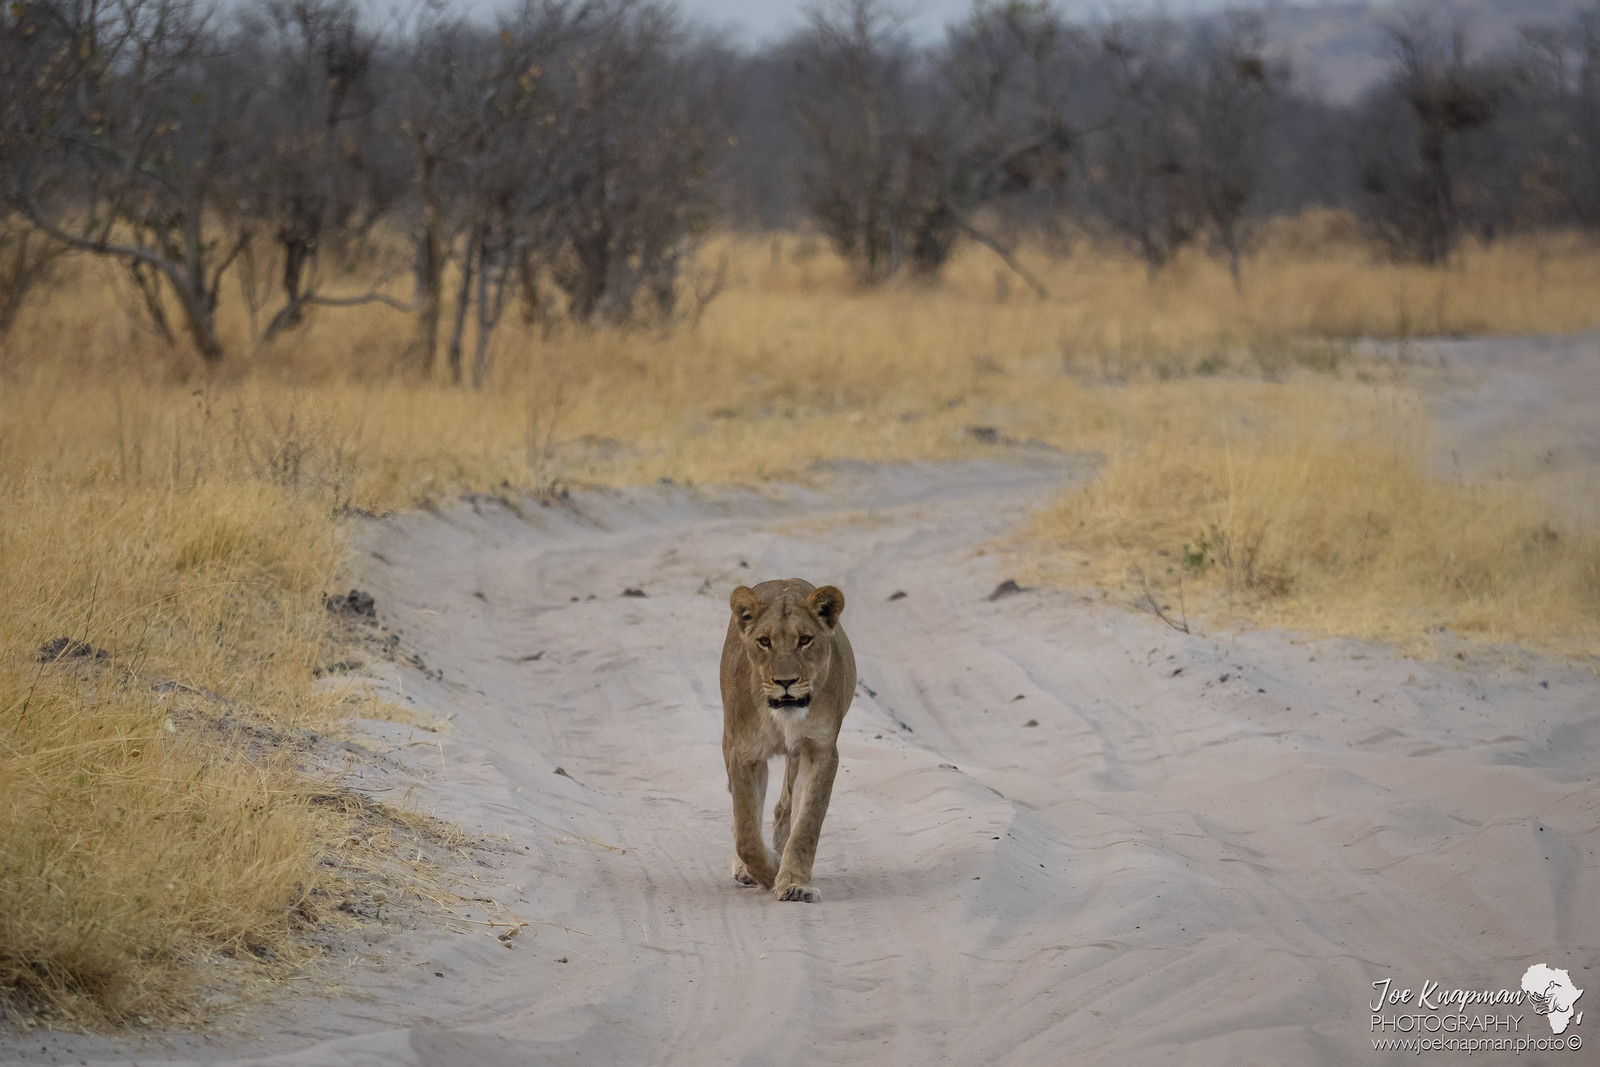 Lioness takes the road